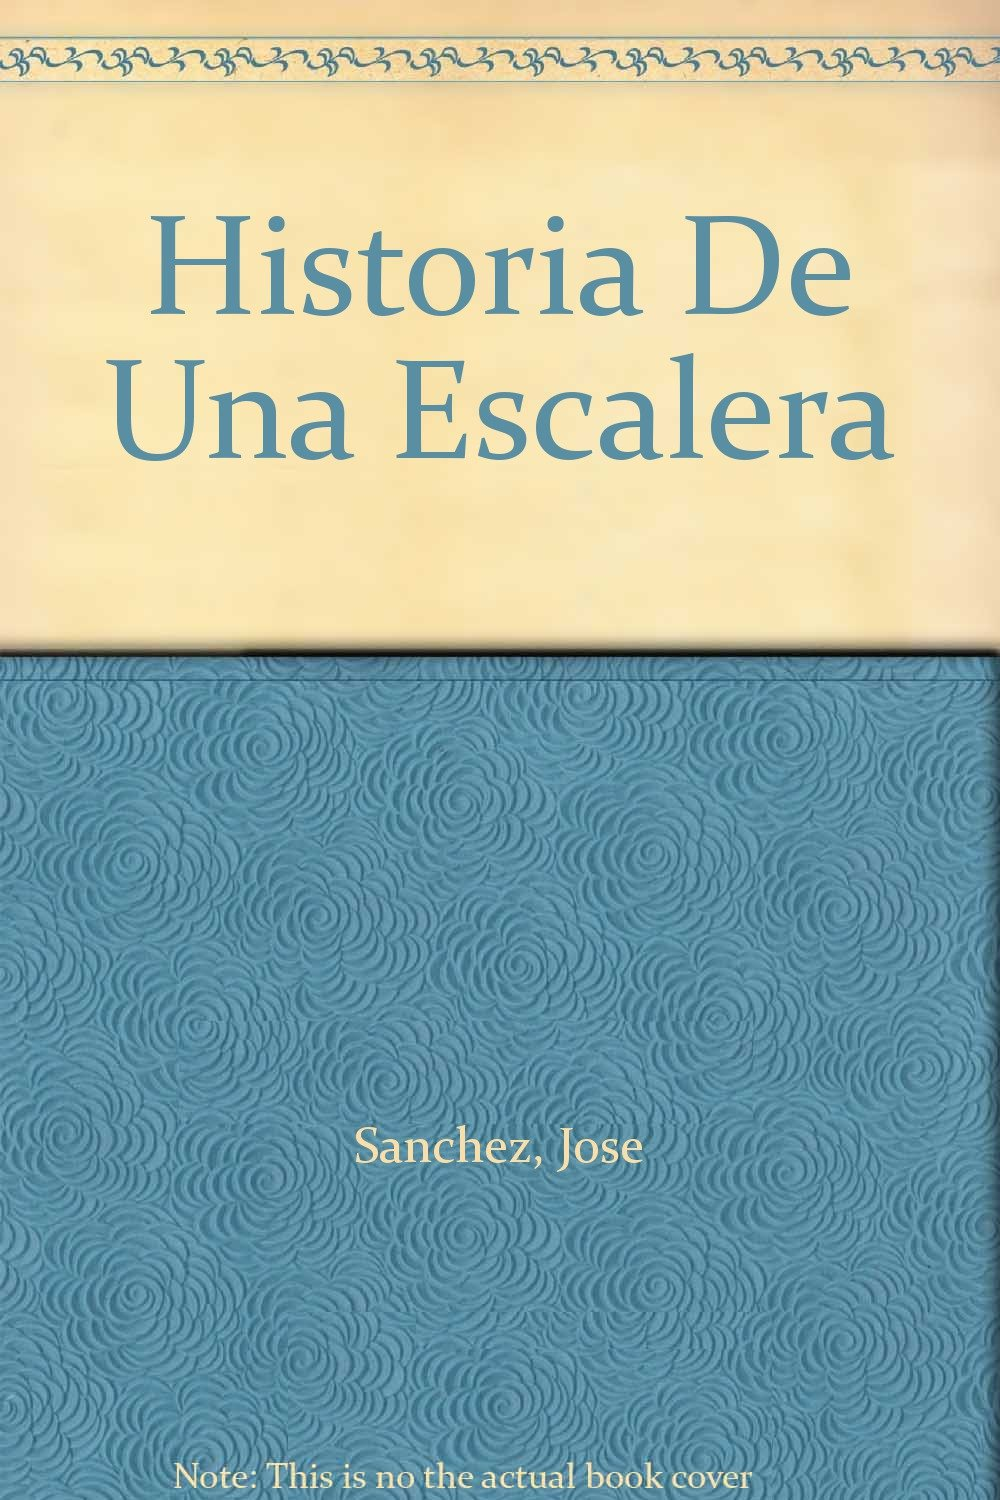 Historia De Una Escalera: Amazon.es: Sanchez, Jose: Libros